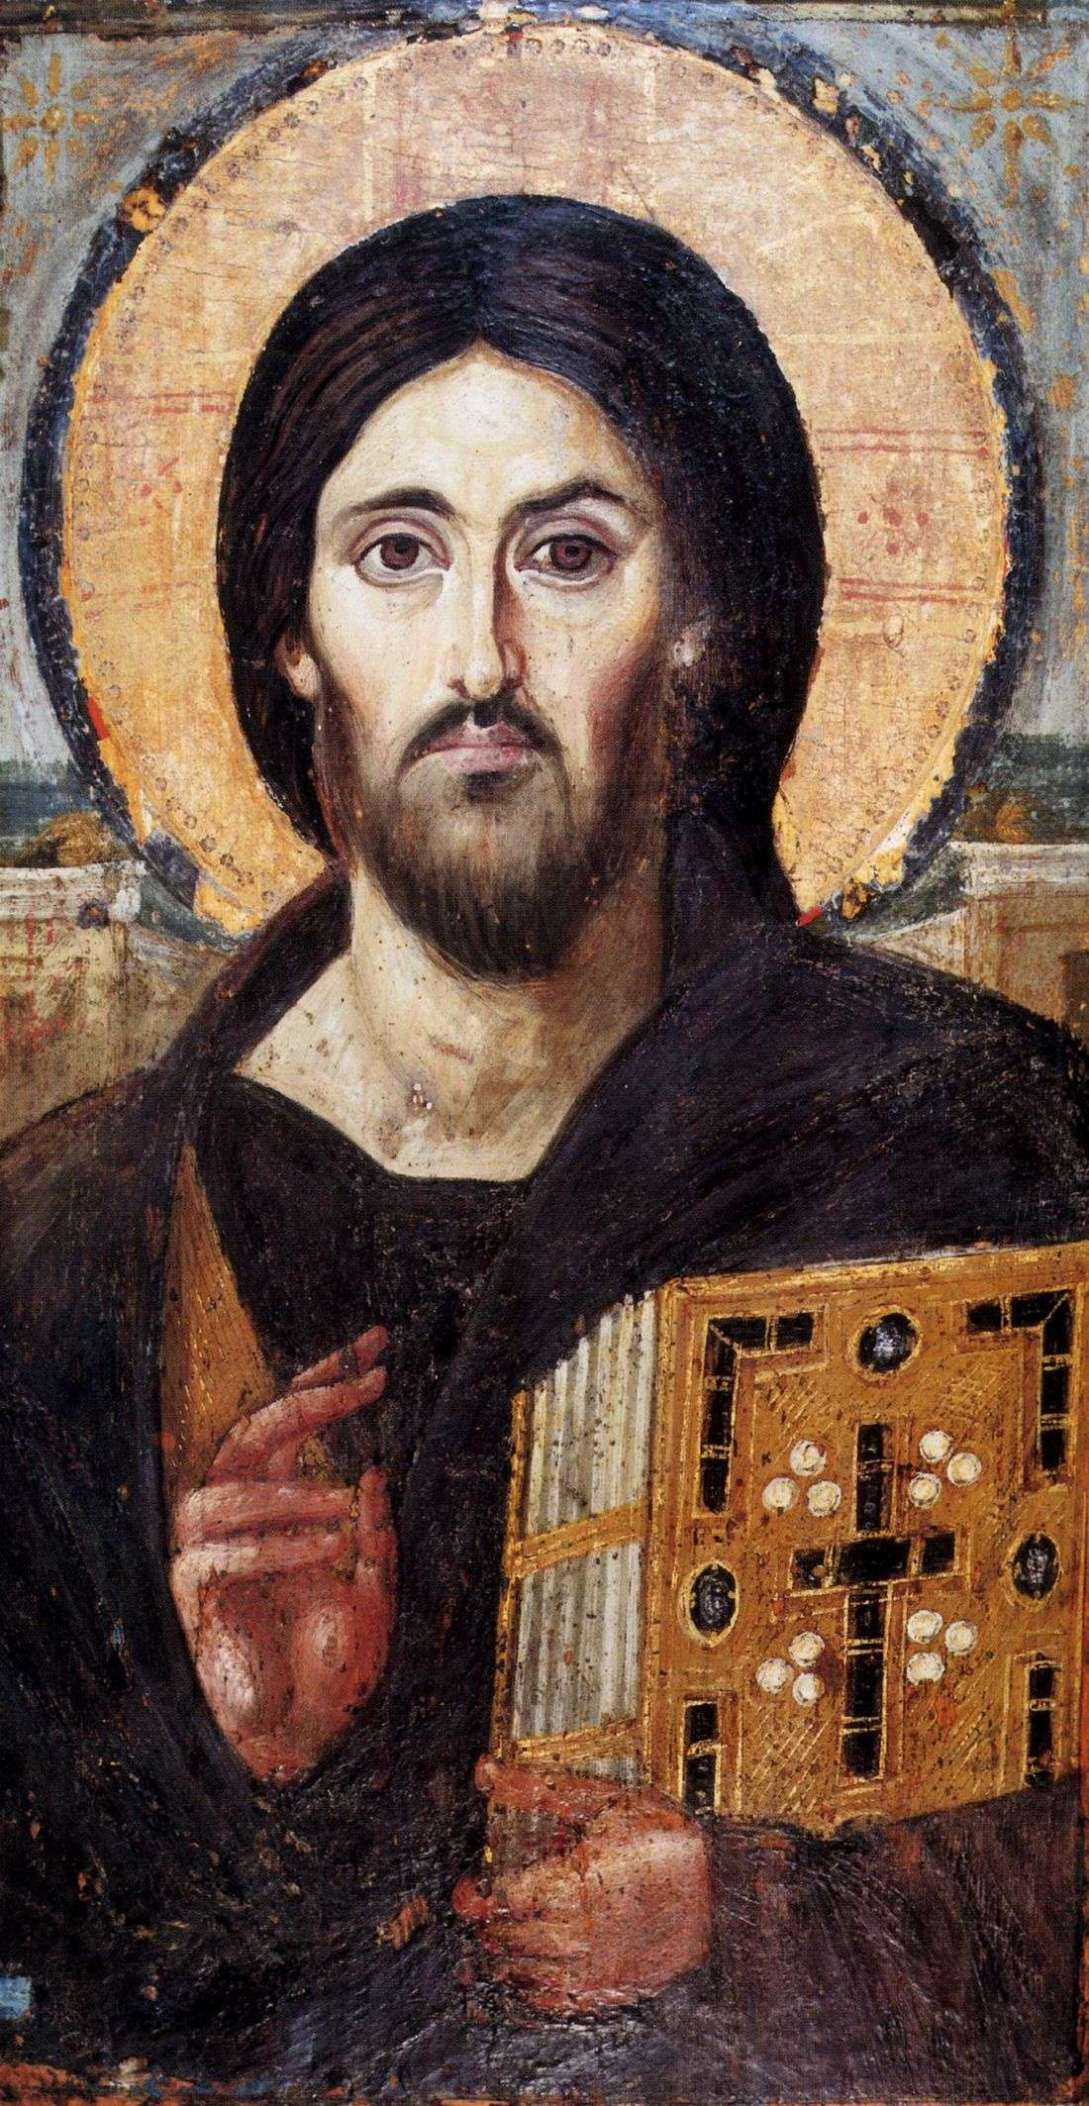 The Meaningful Jesus Icon from Mount Sinai